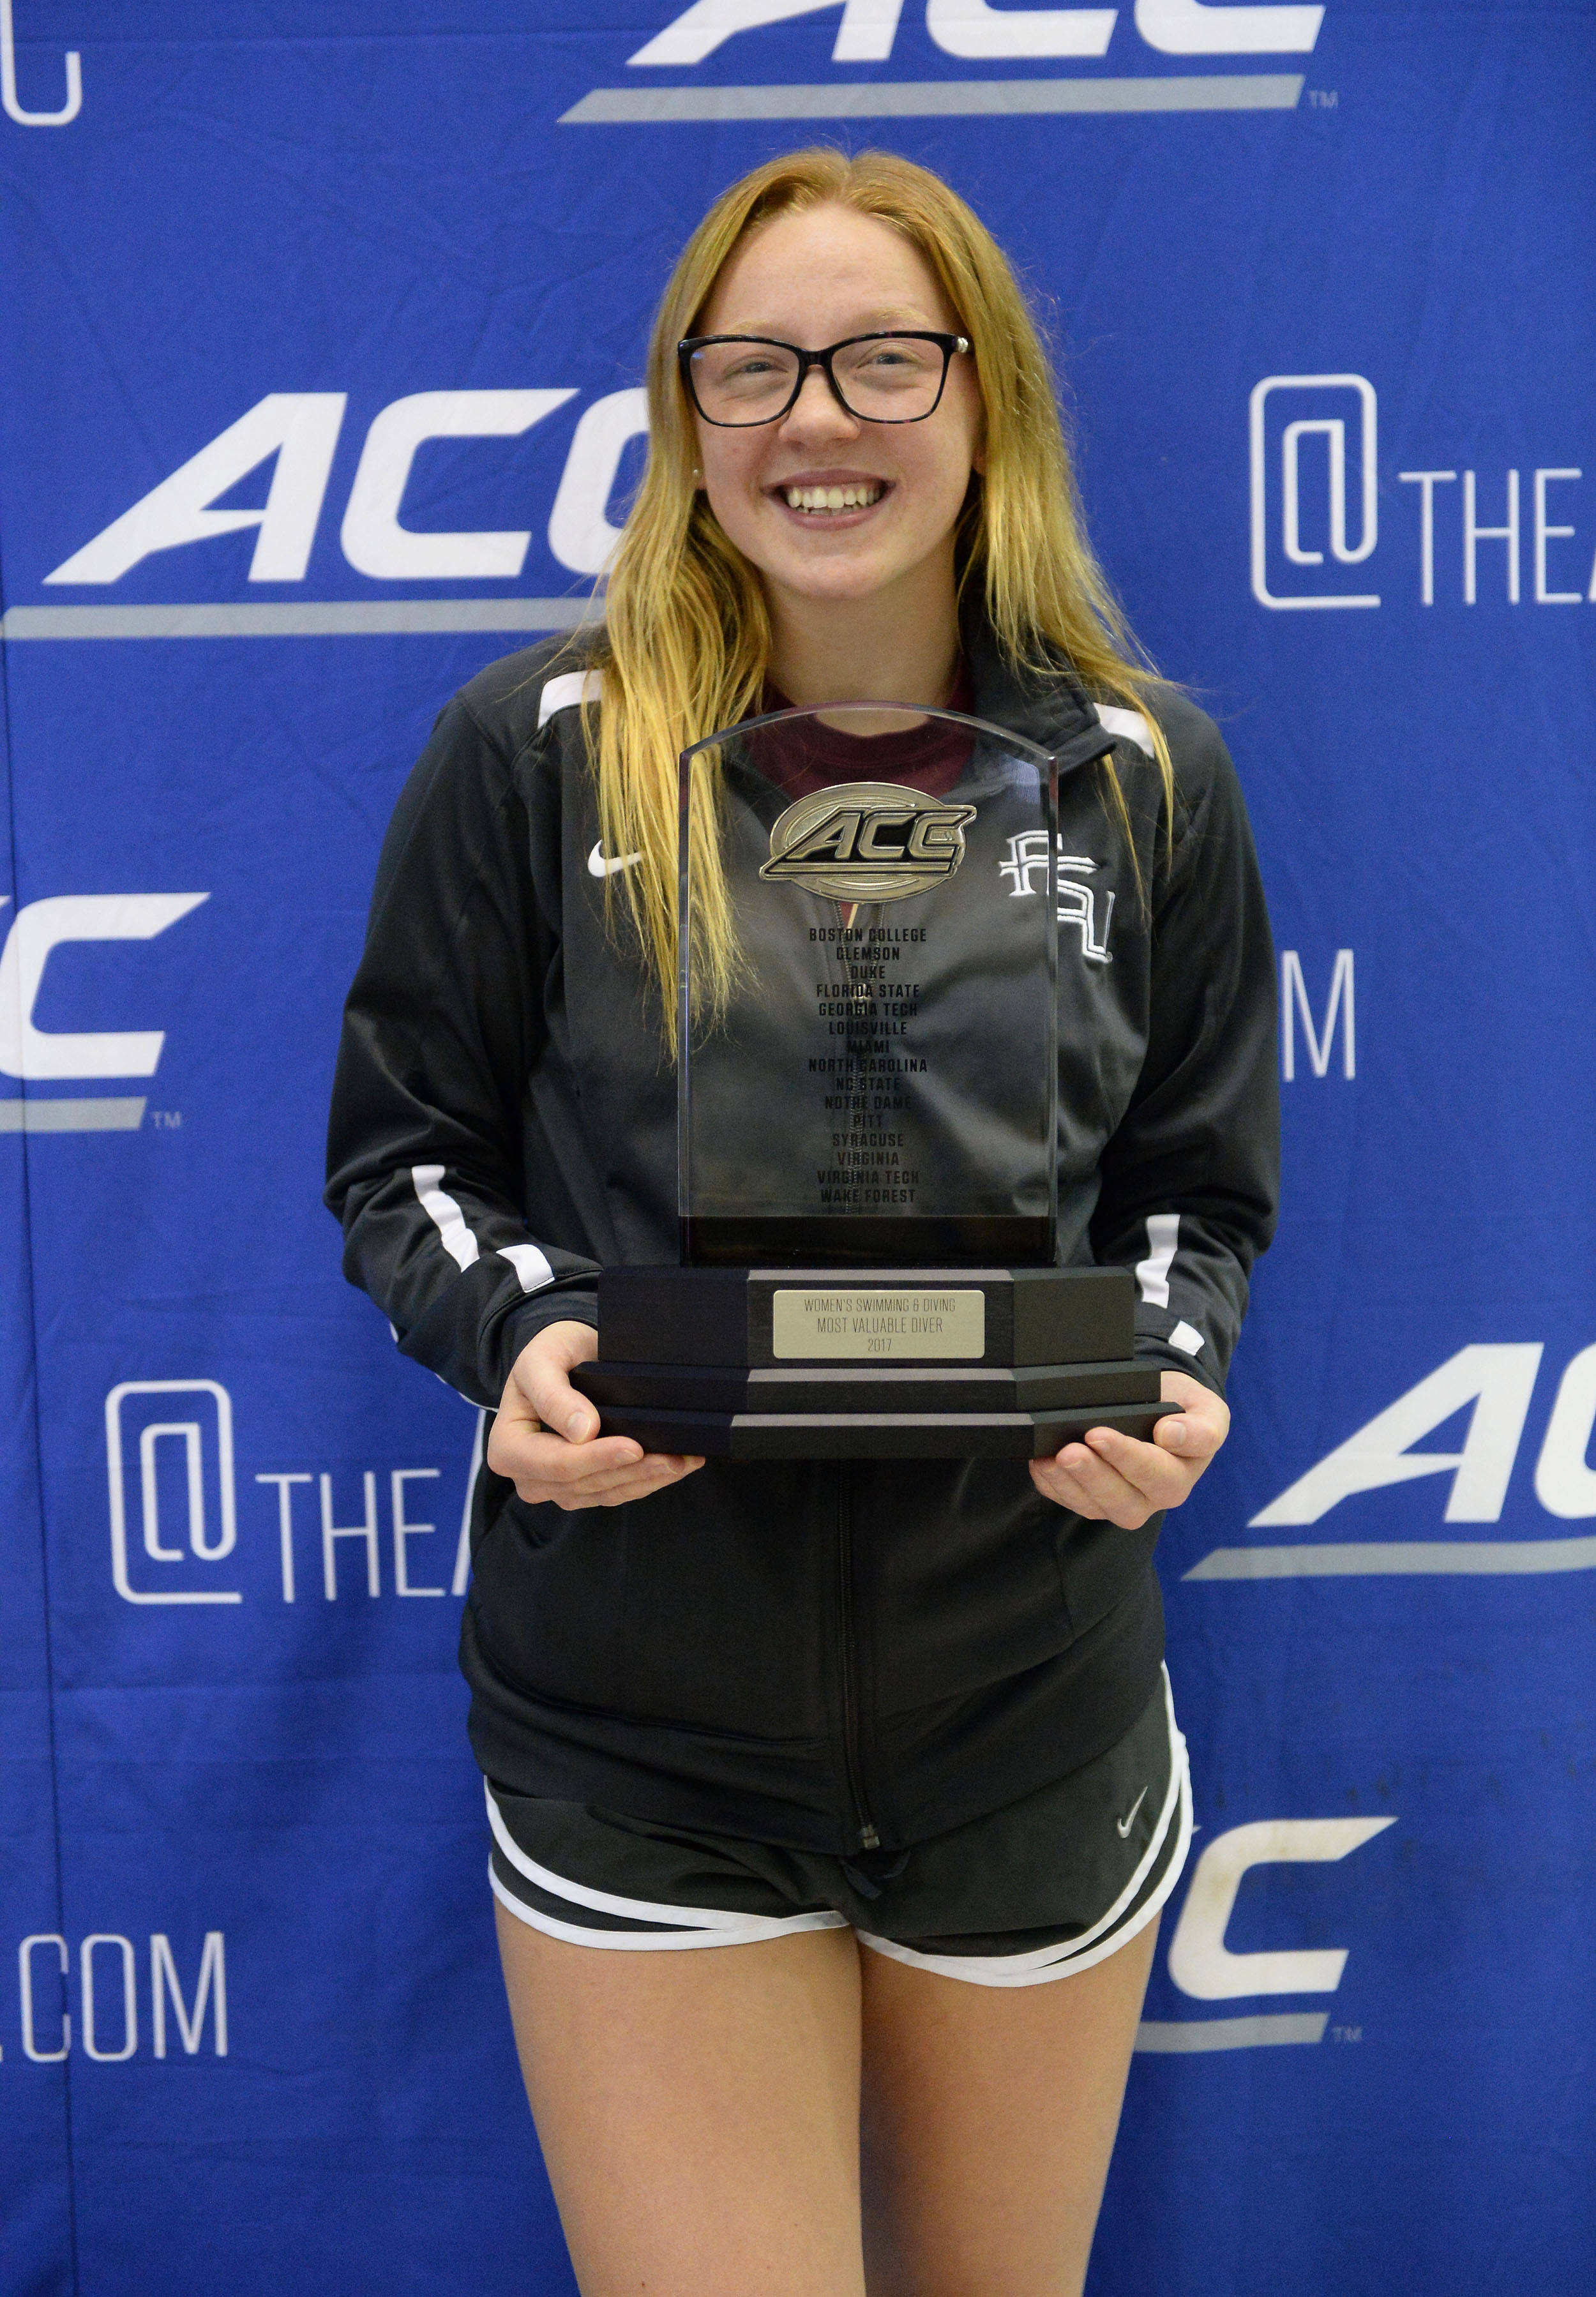 ACC Women's Swimming & Diving Championships